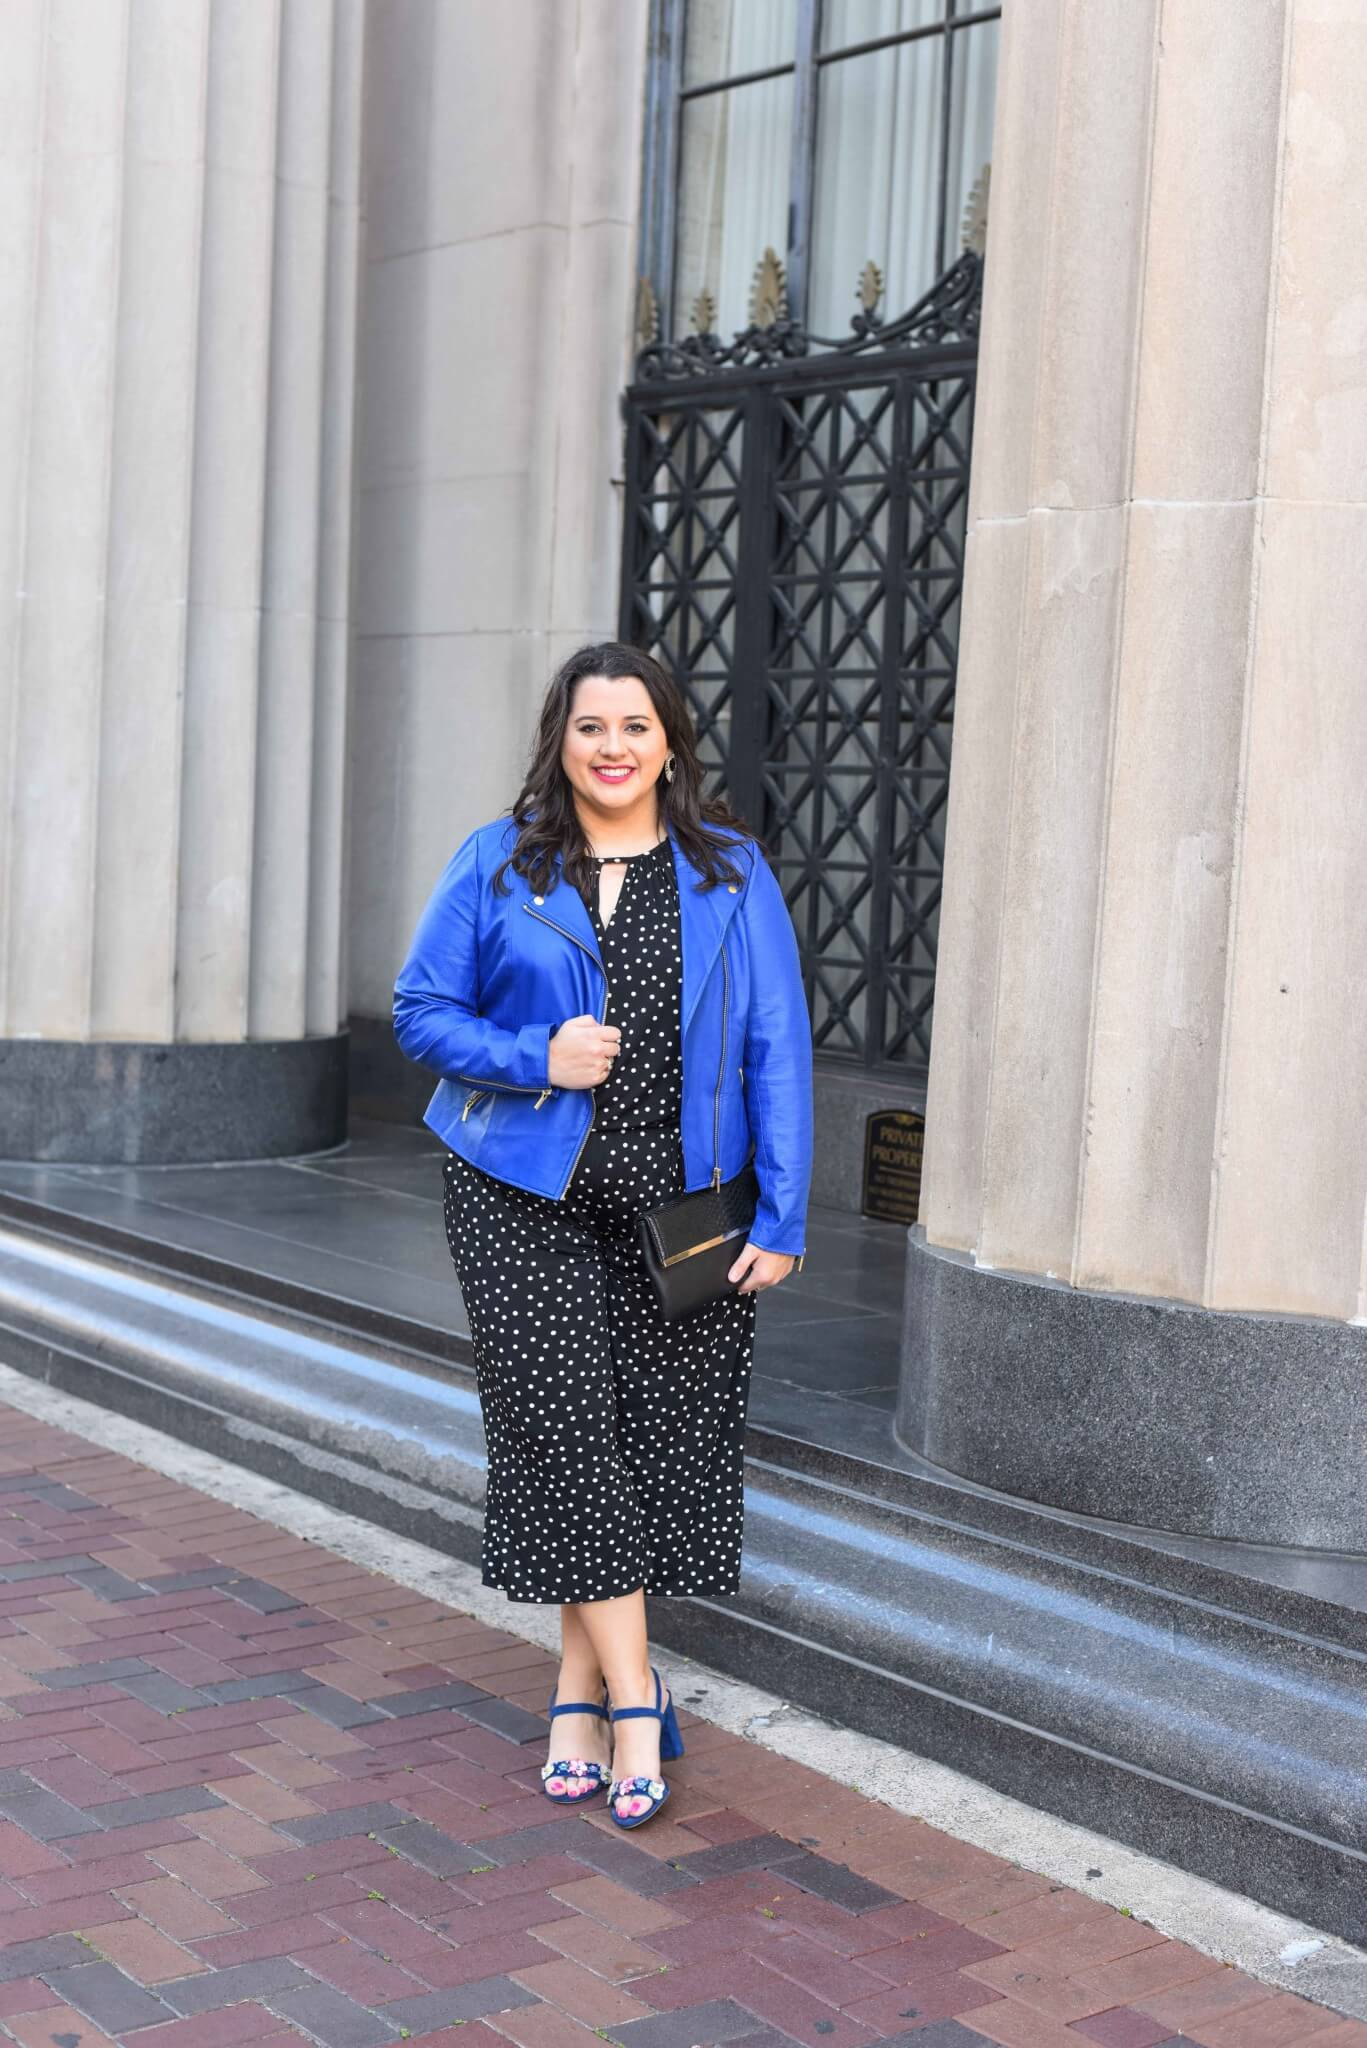 Wearing a jumpsuit as a curvy woman was never something I thought I would be able to pull off, but this black and white jumpsuit is the perfect spring style staple in my wardrobe. Not only does it look chic, it's also effortless to wear. Curvy style and plus size fashion trends brought to you by Emily from the blog, Something Gold, Something Blue.